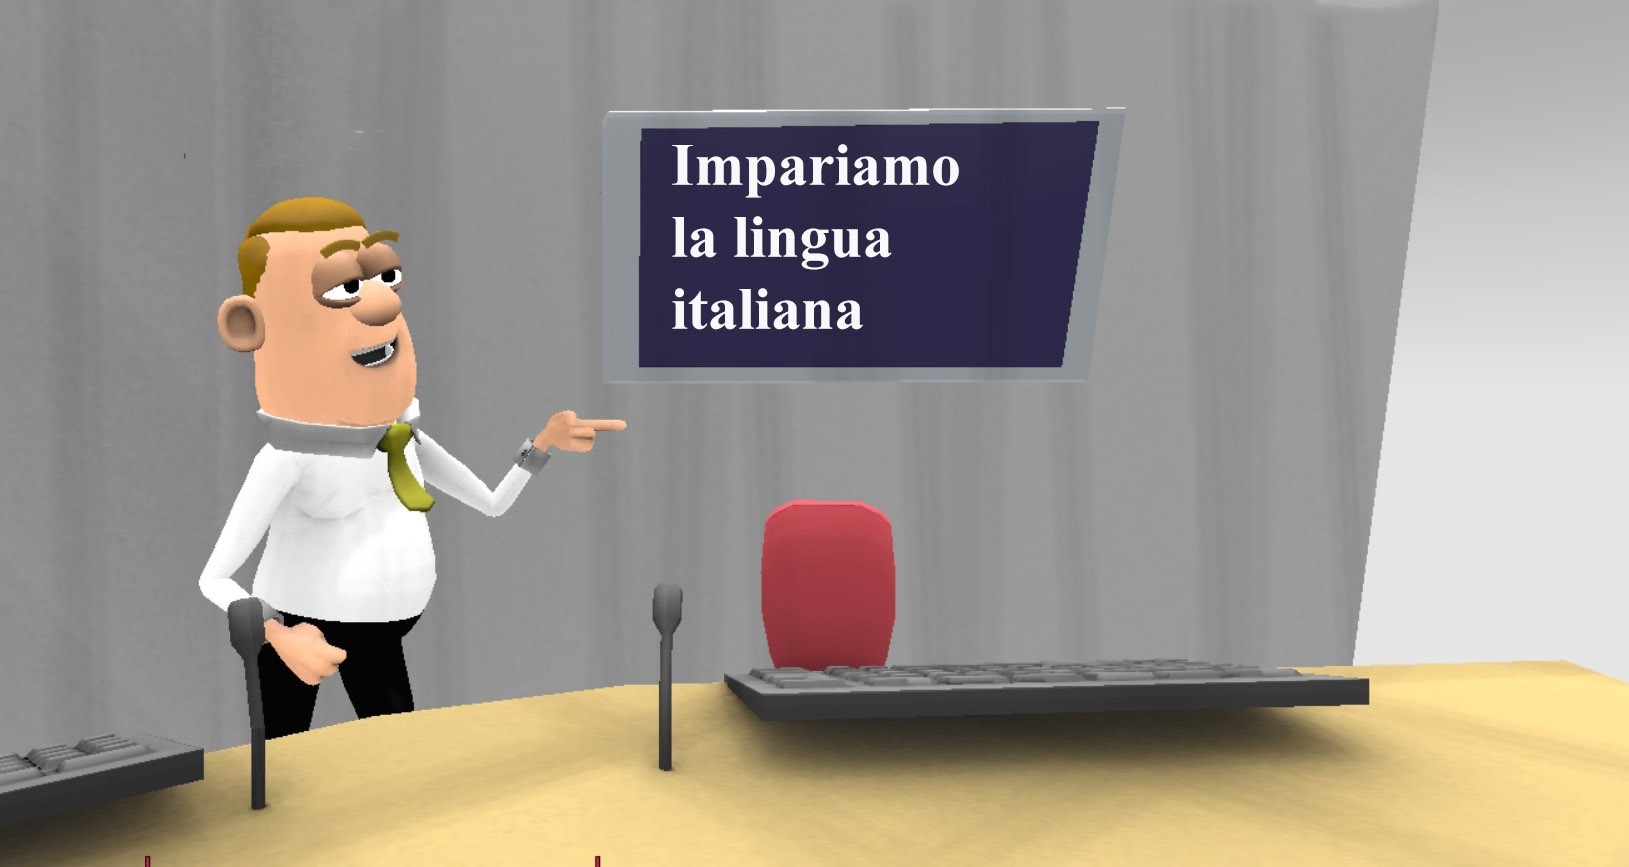 Italian grammar, morphology, syntax and verbs